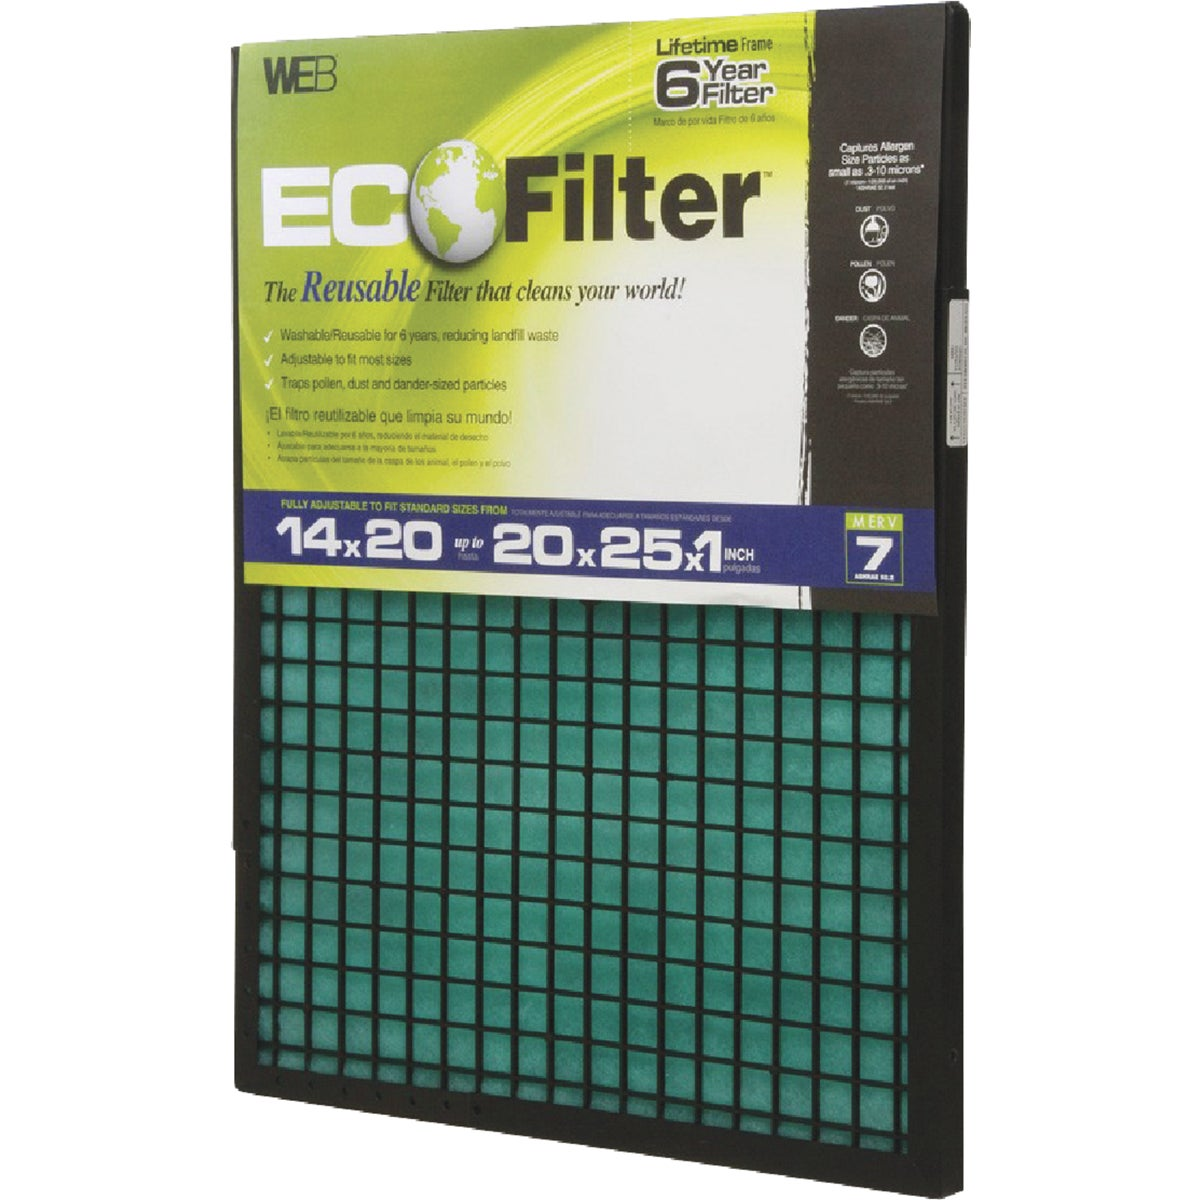 5YR ECO ADJST AIR FILTER - WECO-4PK by Web Products Inc